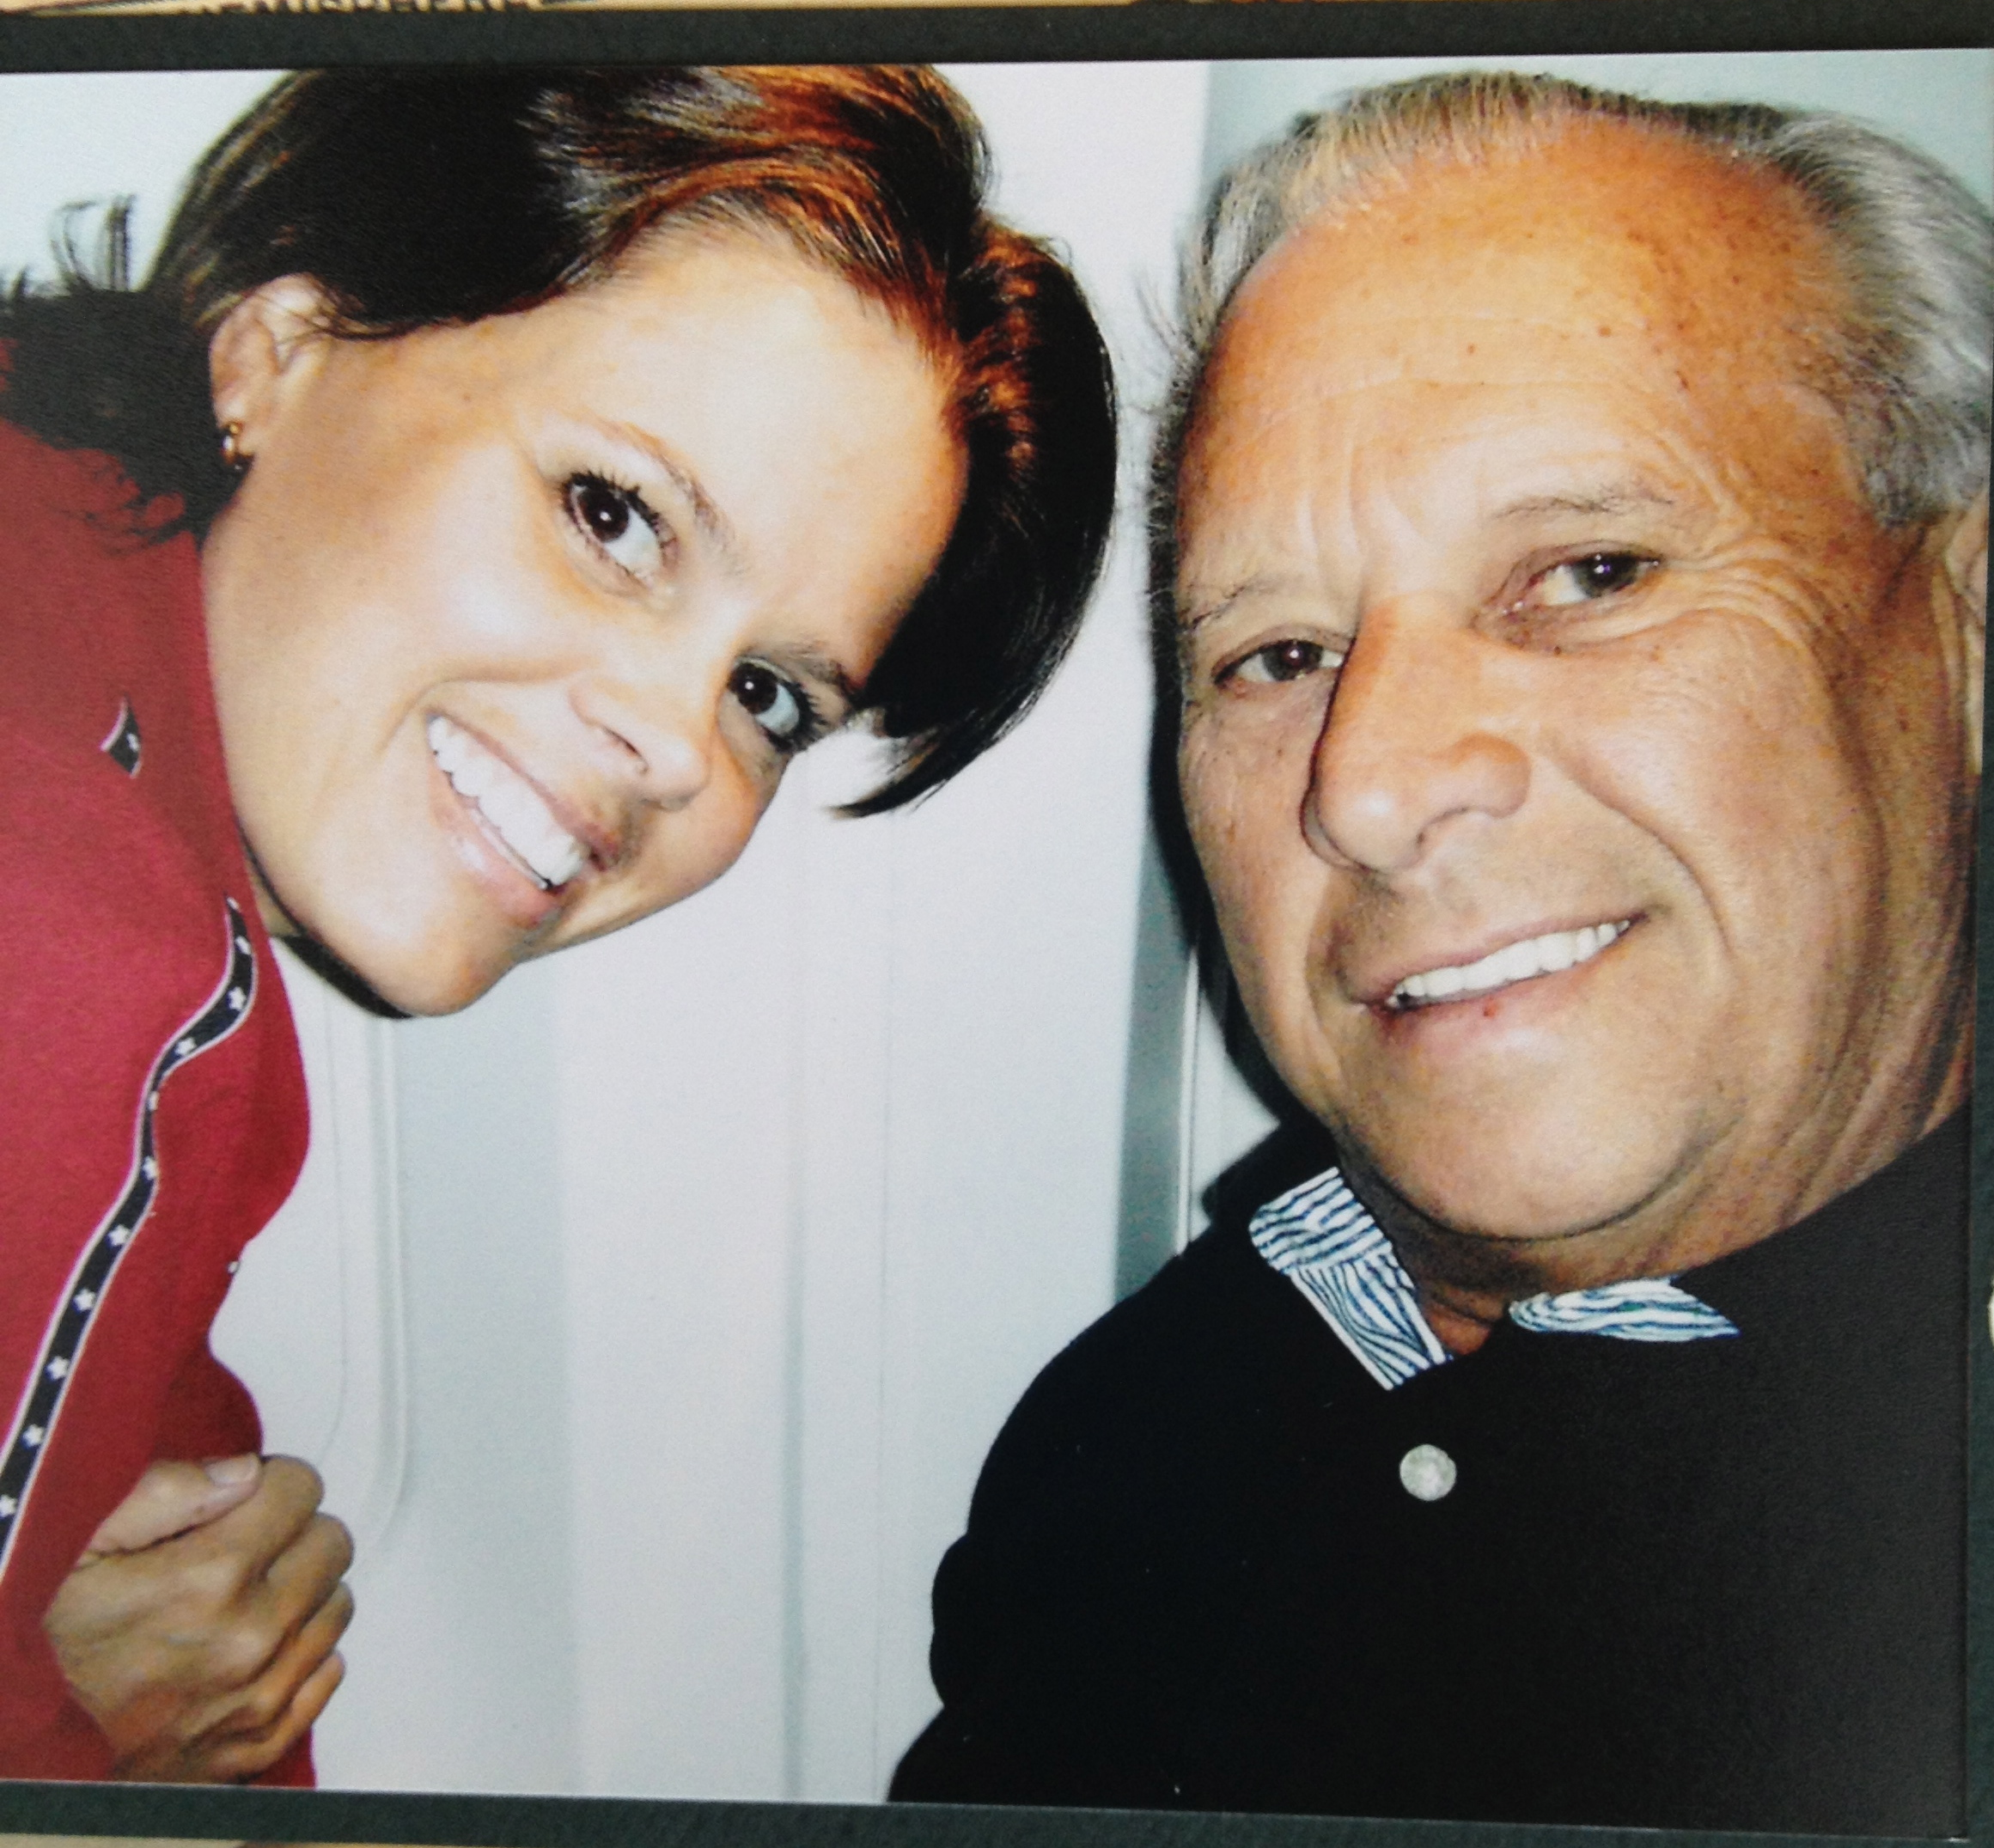 Lisa's mentor and biggest fan was her father, John Kubinski. He taught her to work hard, always do your best, never give up, be fair and do what's right. John Kubinski passed away on March 14, 2012. Lisa dedicates each DX event to him and has named the Overall Best-of-the-Best Award in his honor.